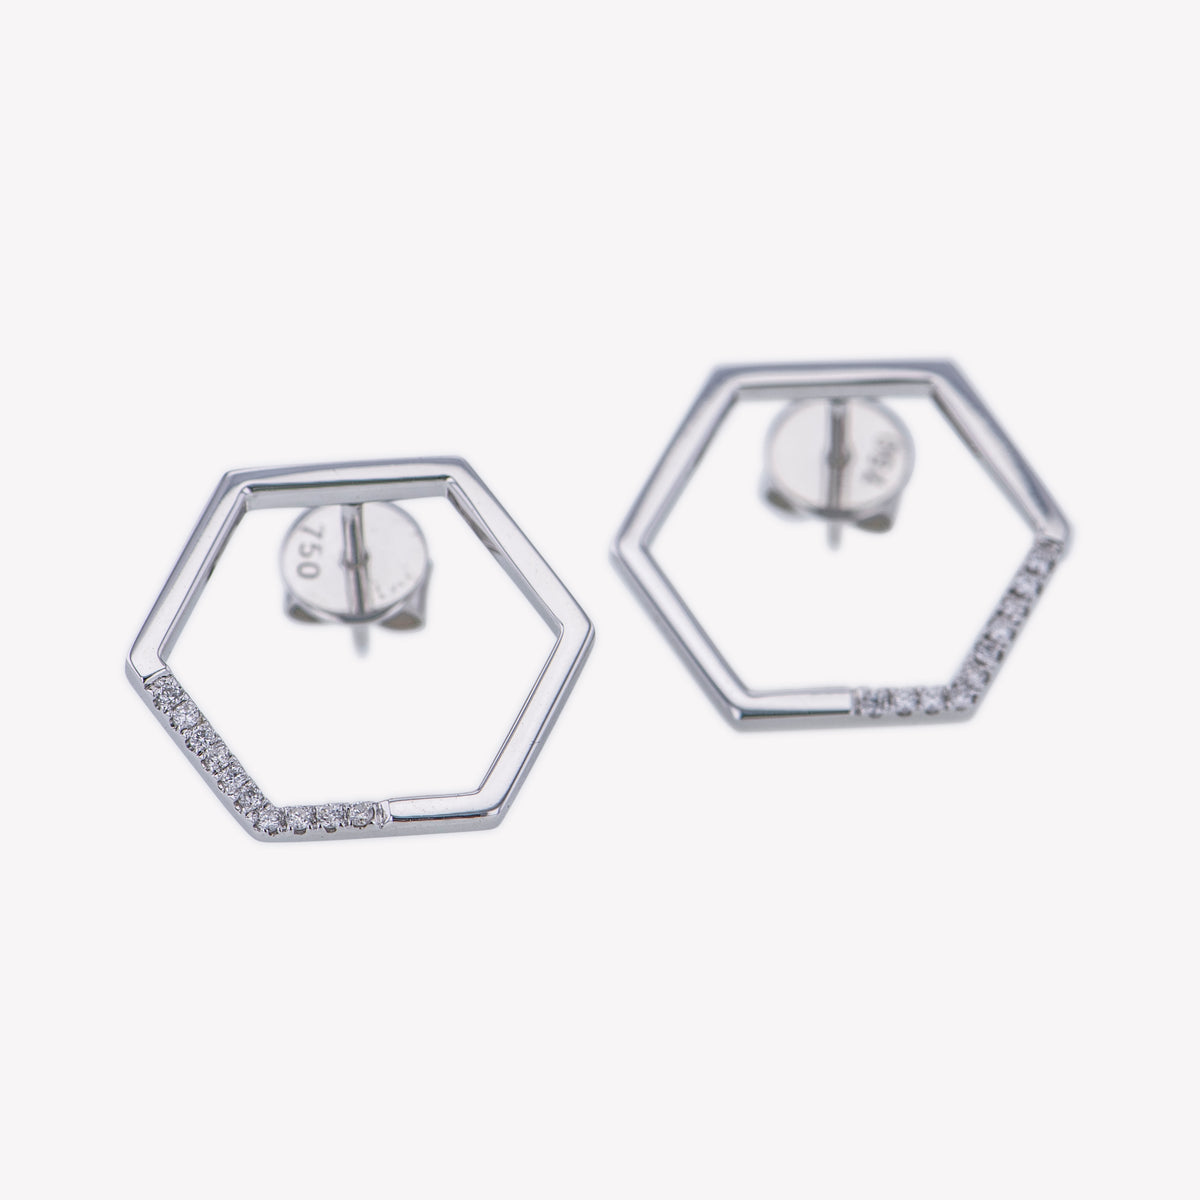 Hexagon Earrings in White Gold